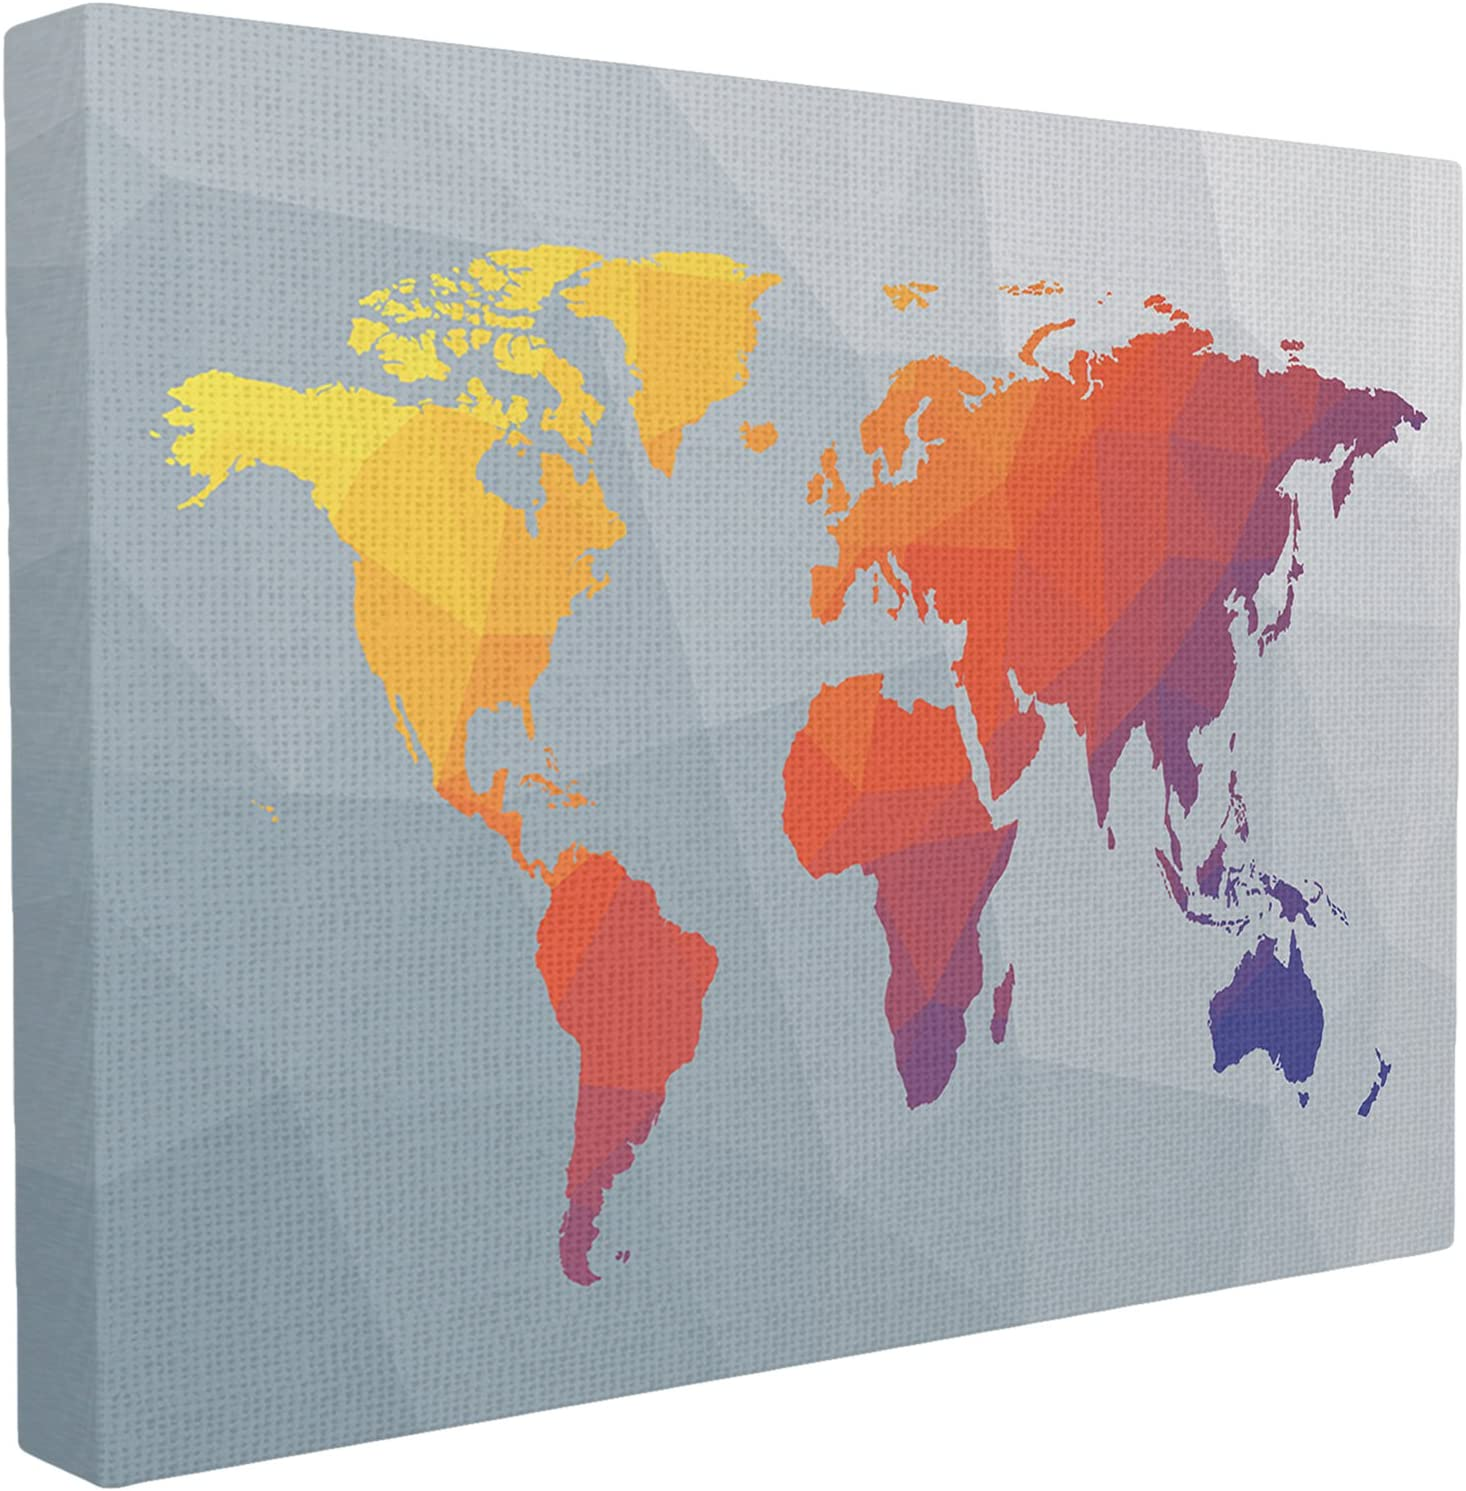 The Stupell Home Decor Collection Polygonal World Map Stretched Canvas Wall Art, 24 x 30, Multicolor